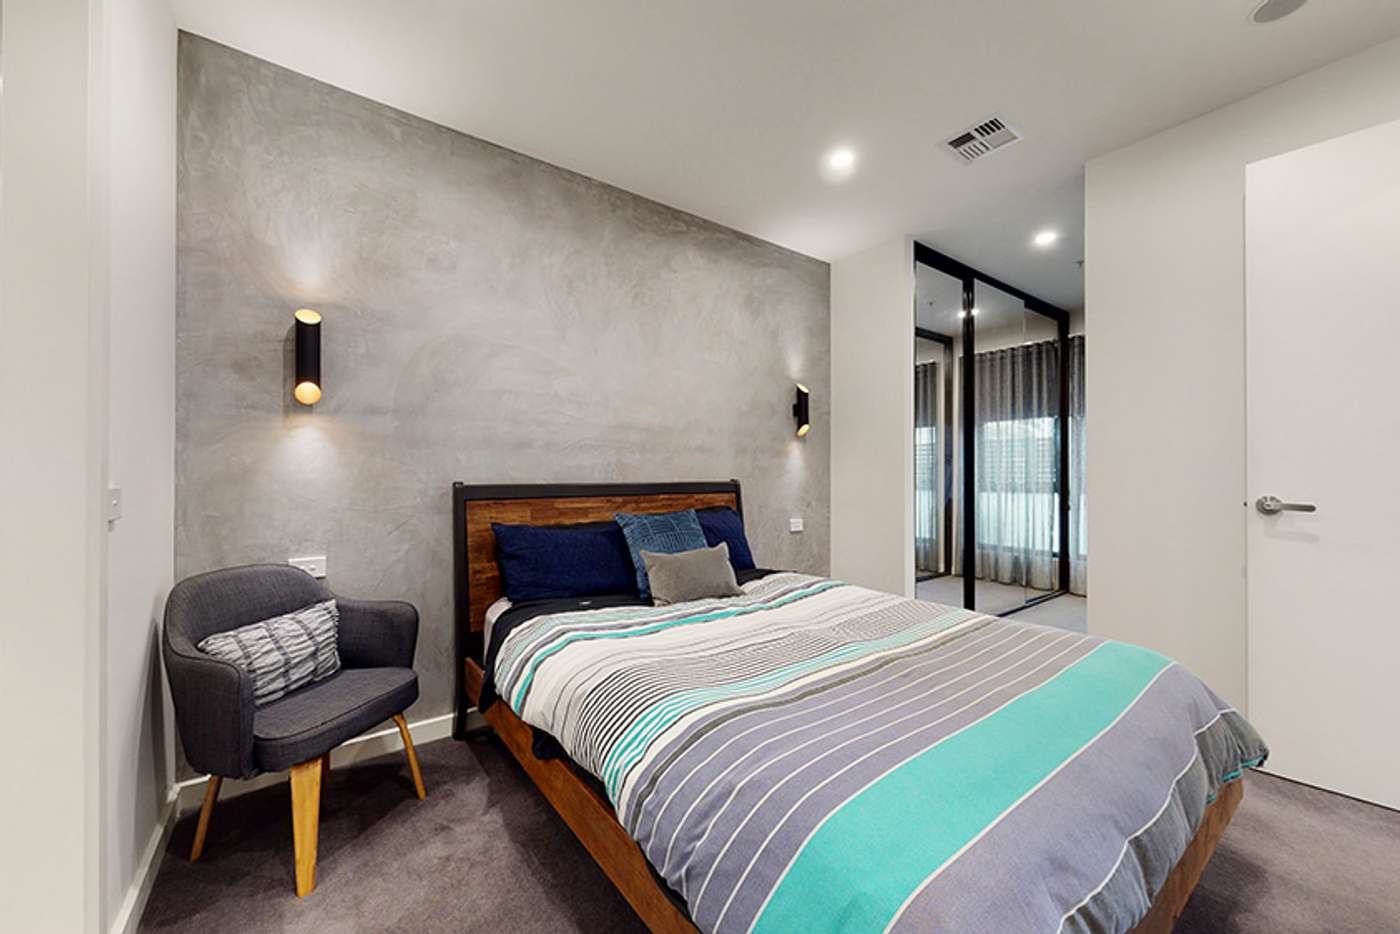 Fifth view of Homely apartment listing, 102/7 Cowra Street, Brighton VIC 3186